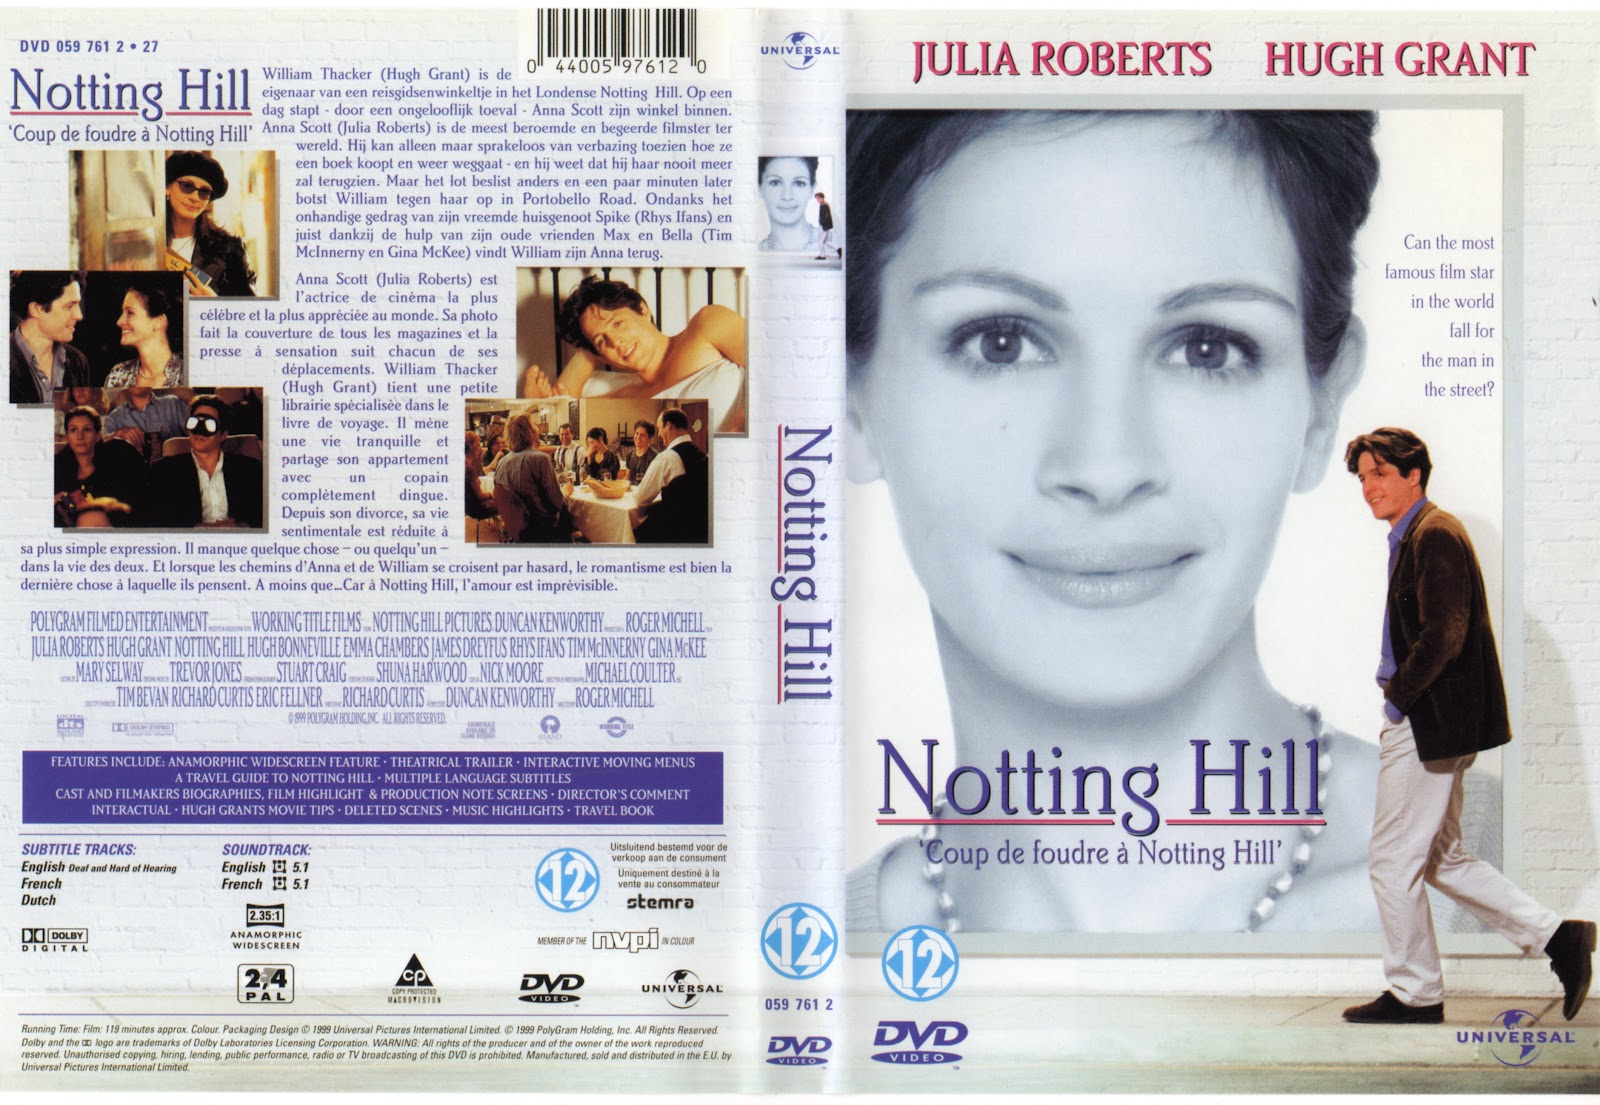 Julia roberts notting hill nude naked pussy slip celebrity - Coup de foudre a notting hill musique ...